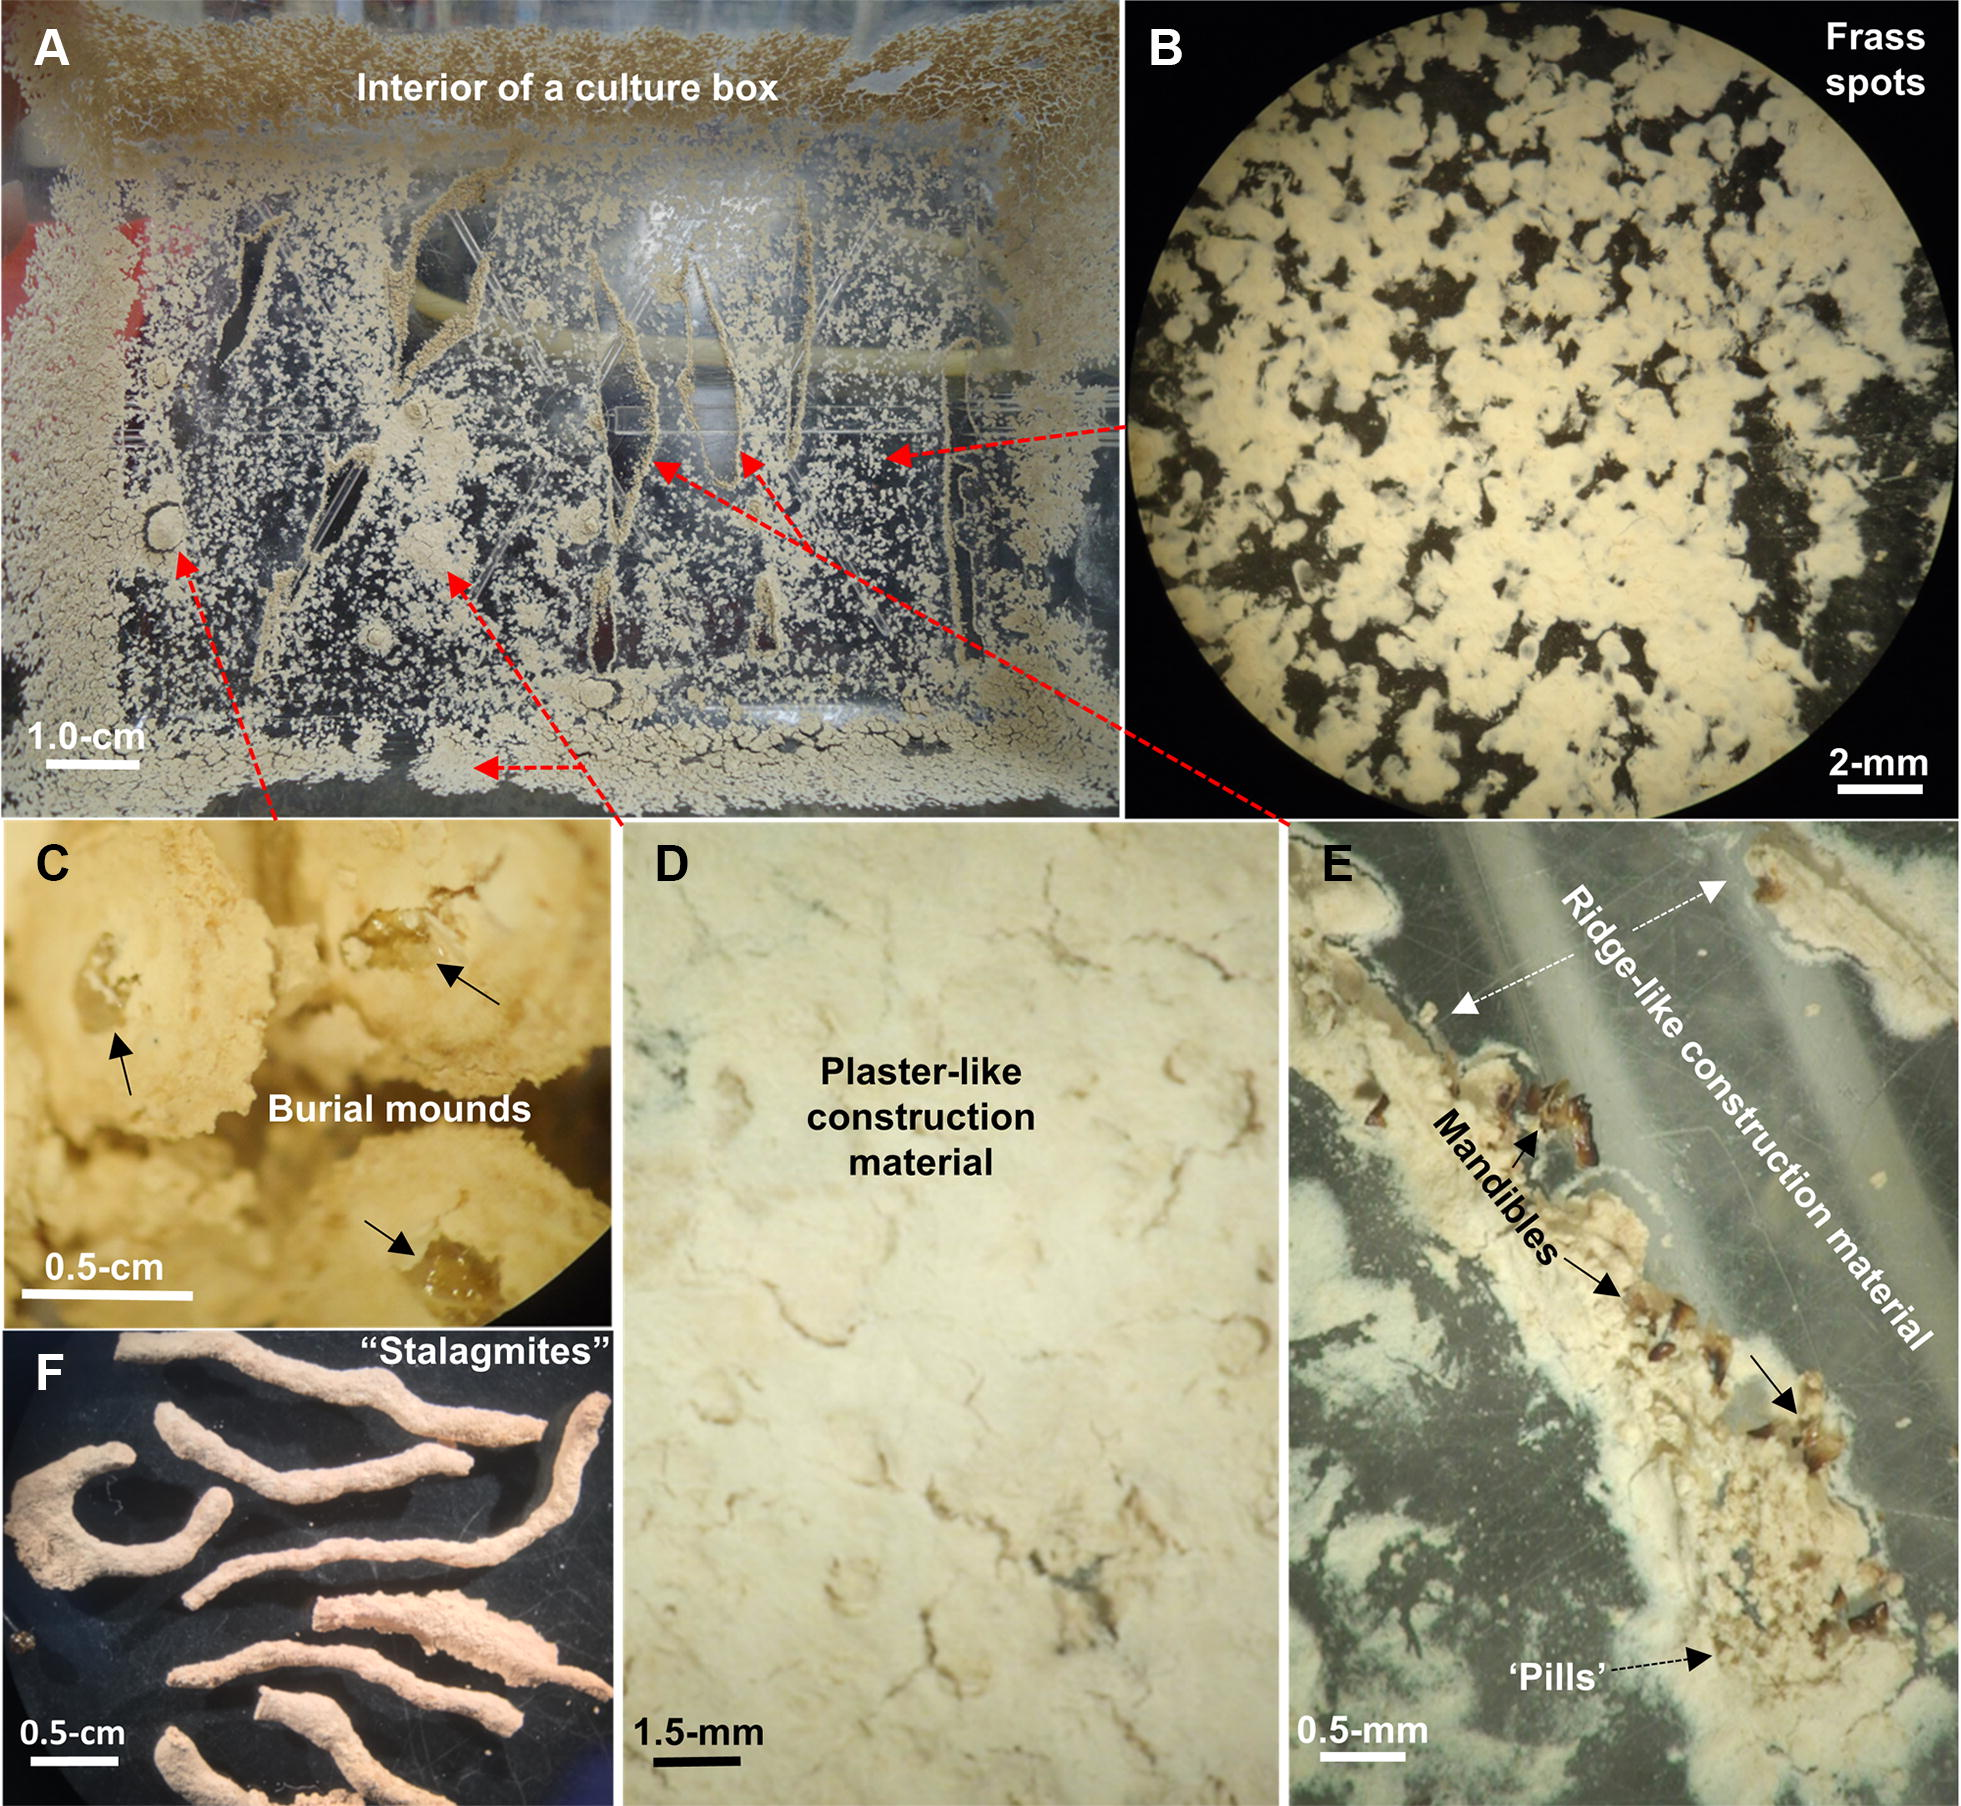 Evidence for the Role of Subterranean Termites